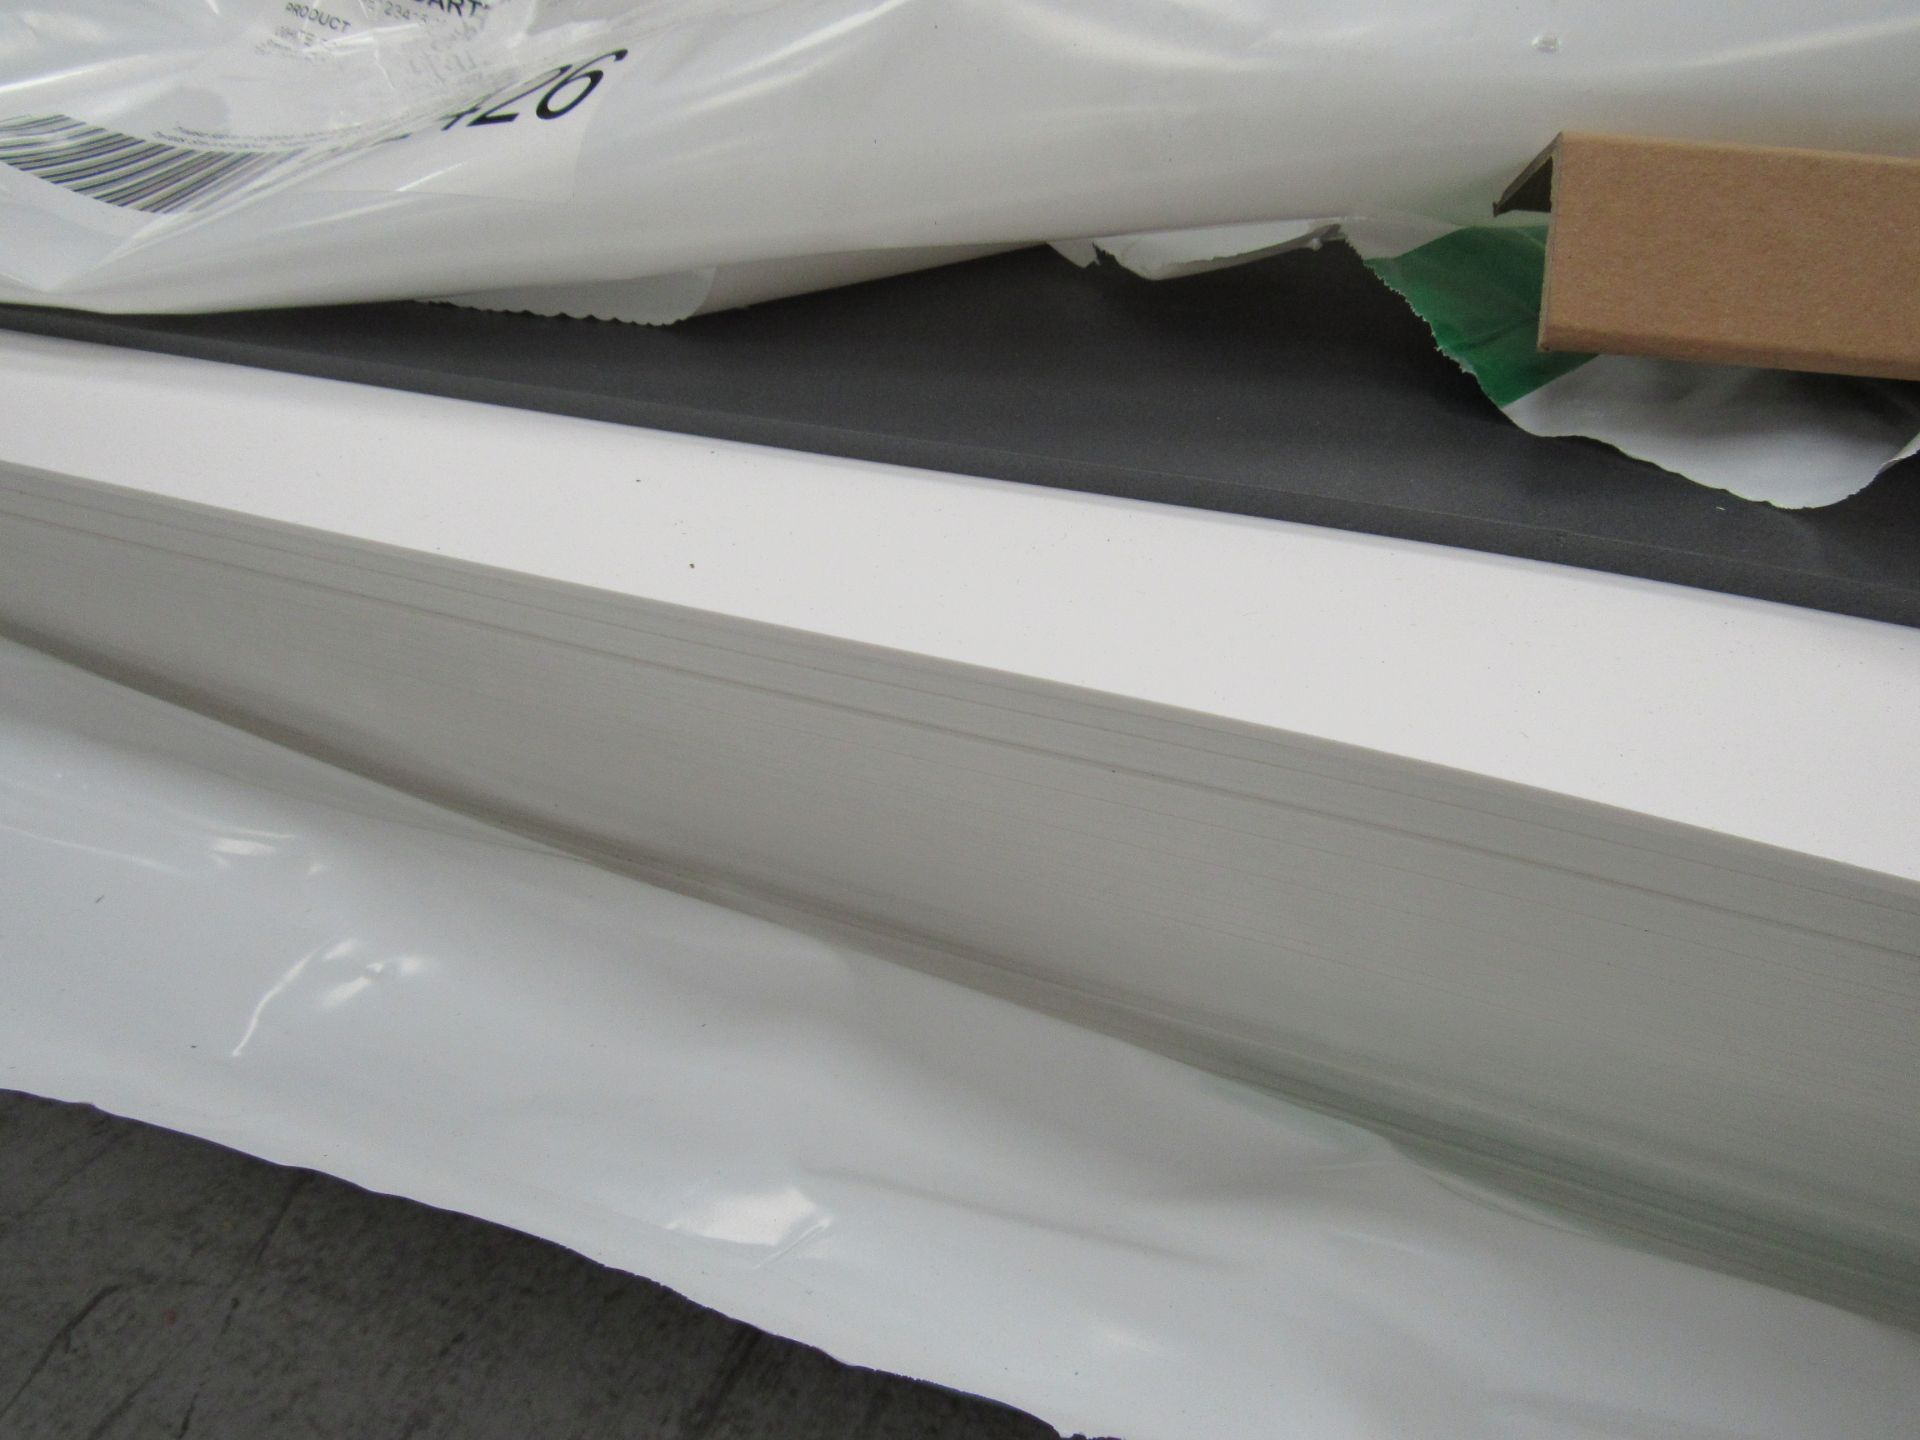 6 Packs and Part Pack White Foam Light 3mm x 1520mm Boards - Image 4 of 5